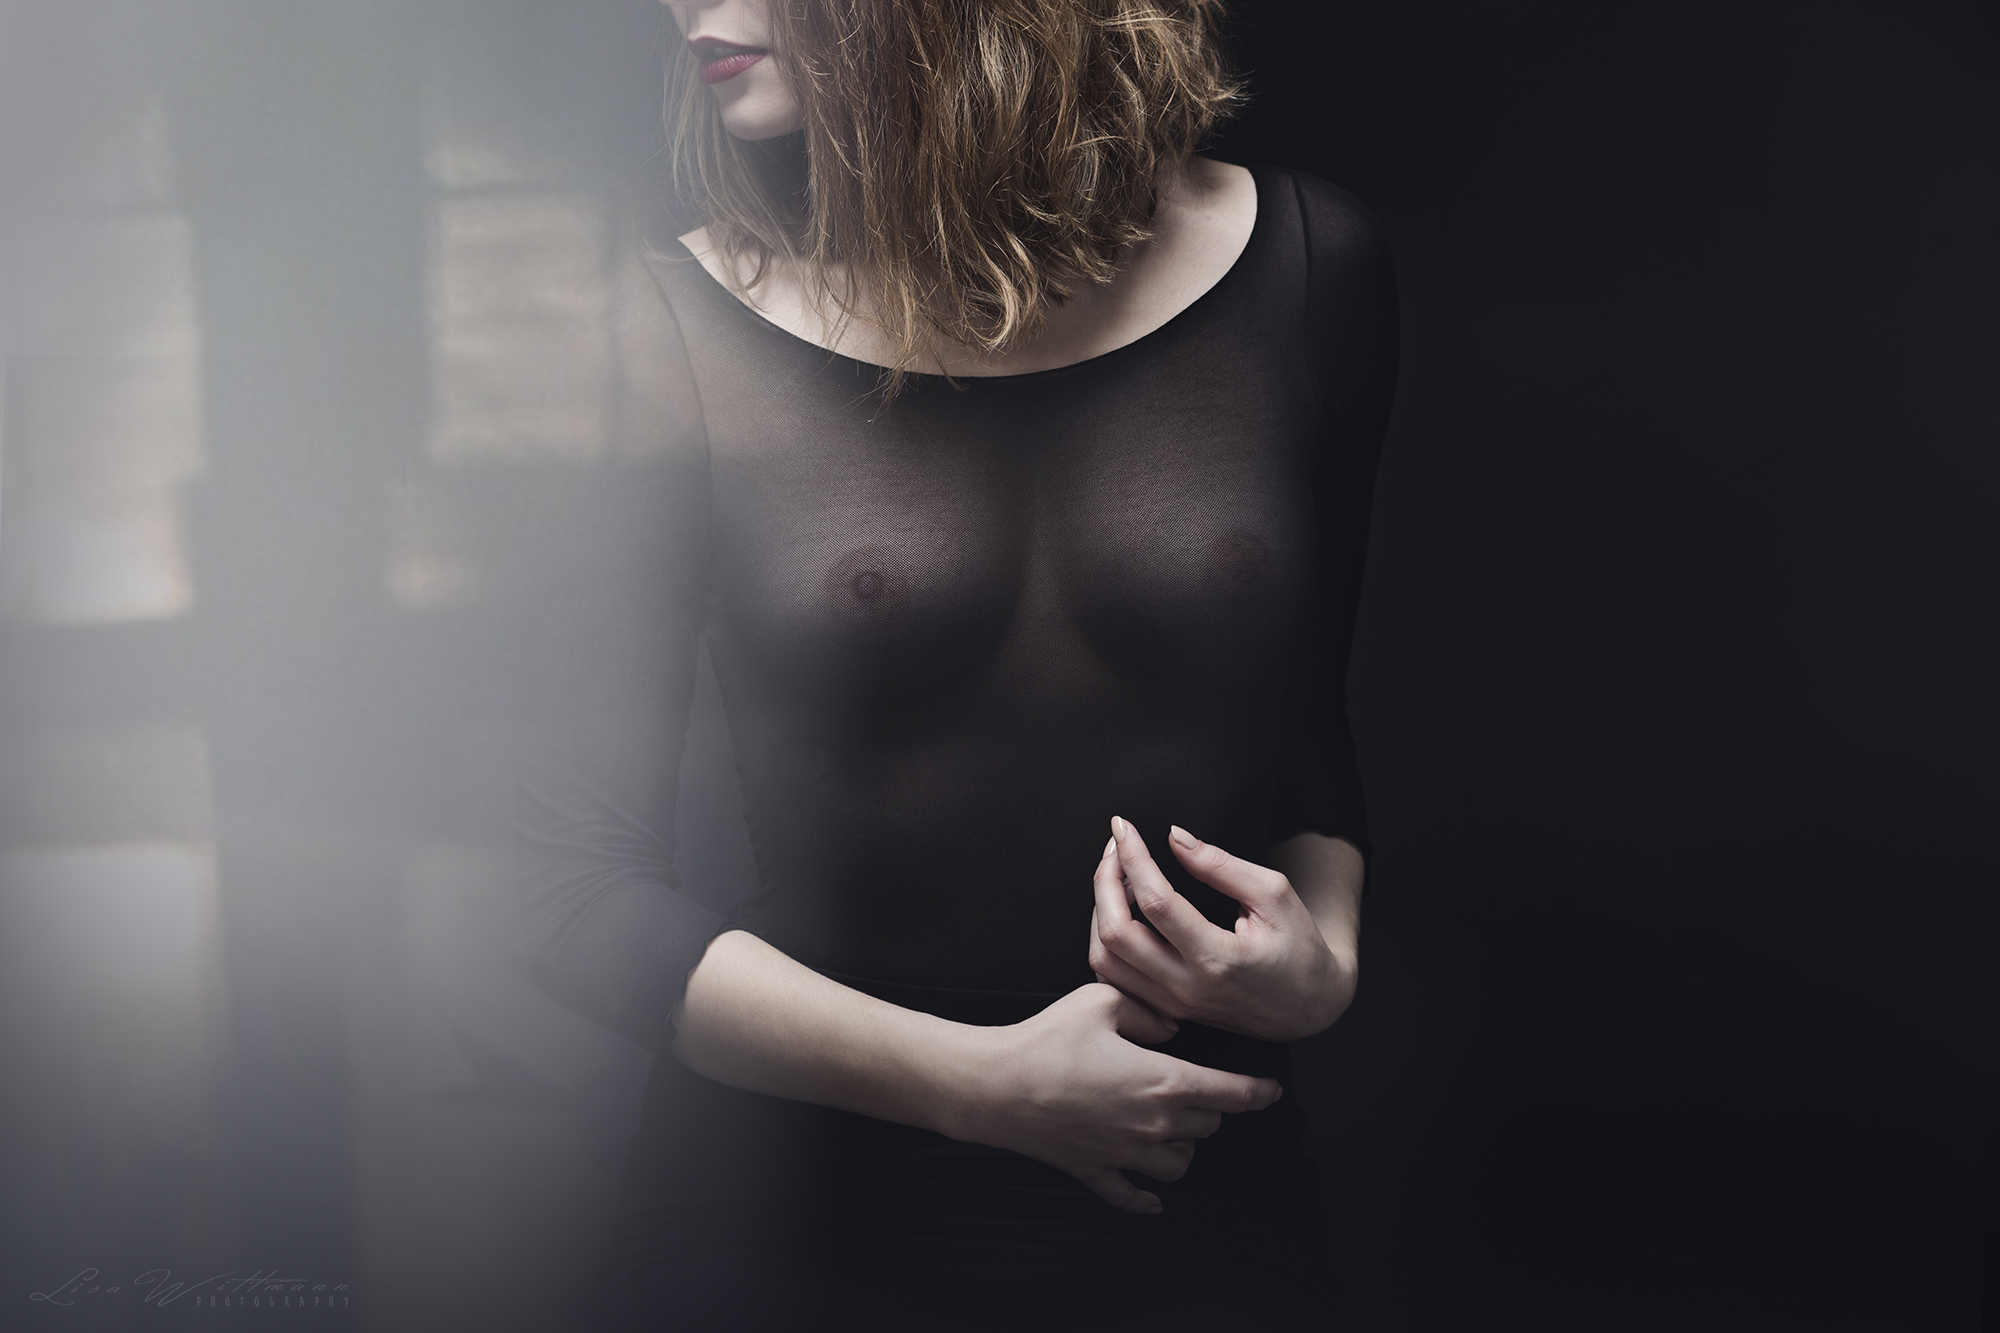 lisa_wittmann_photography_woman_nude_black (1)